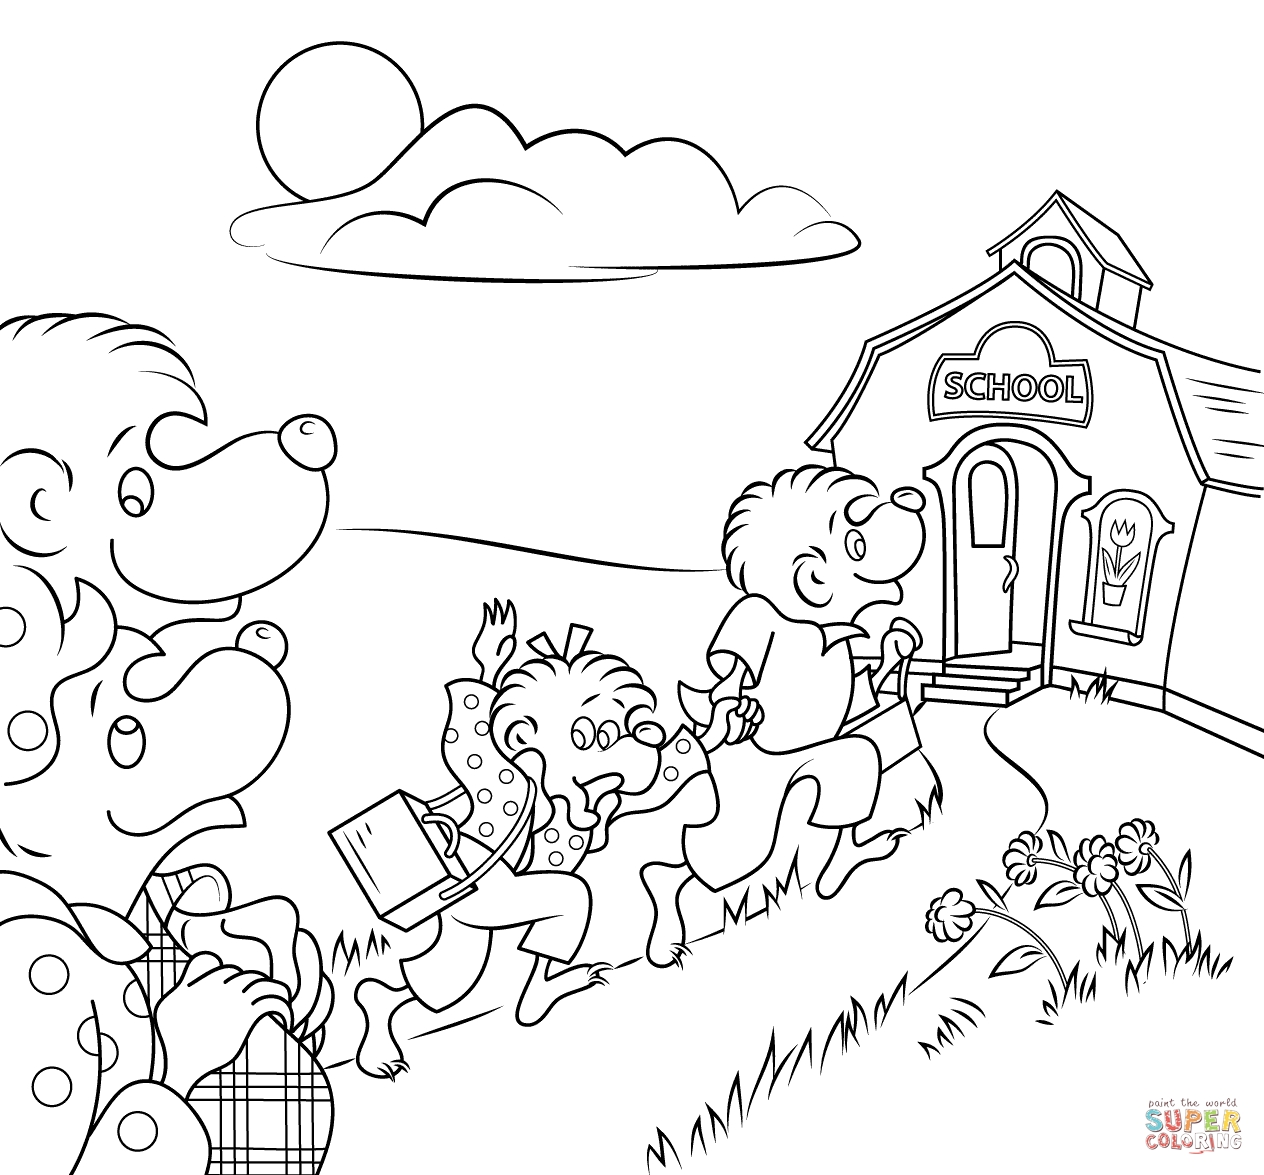 berenstain bears coloring pages - berenstain bears coloring face sketch templates